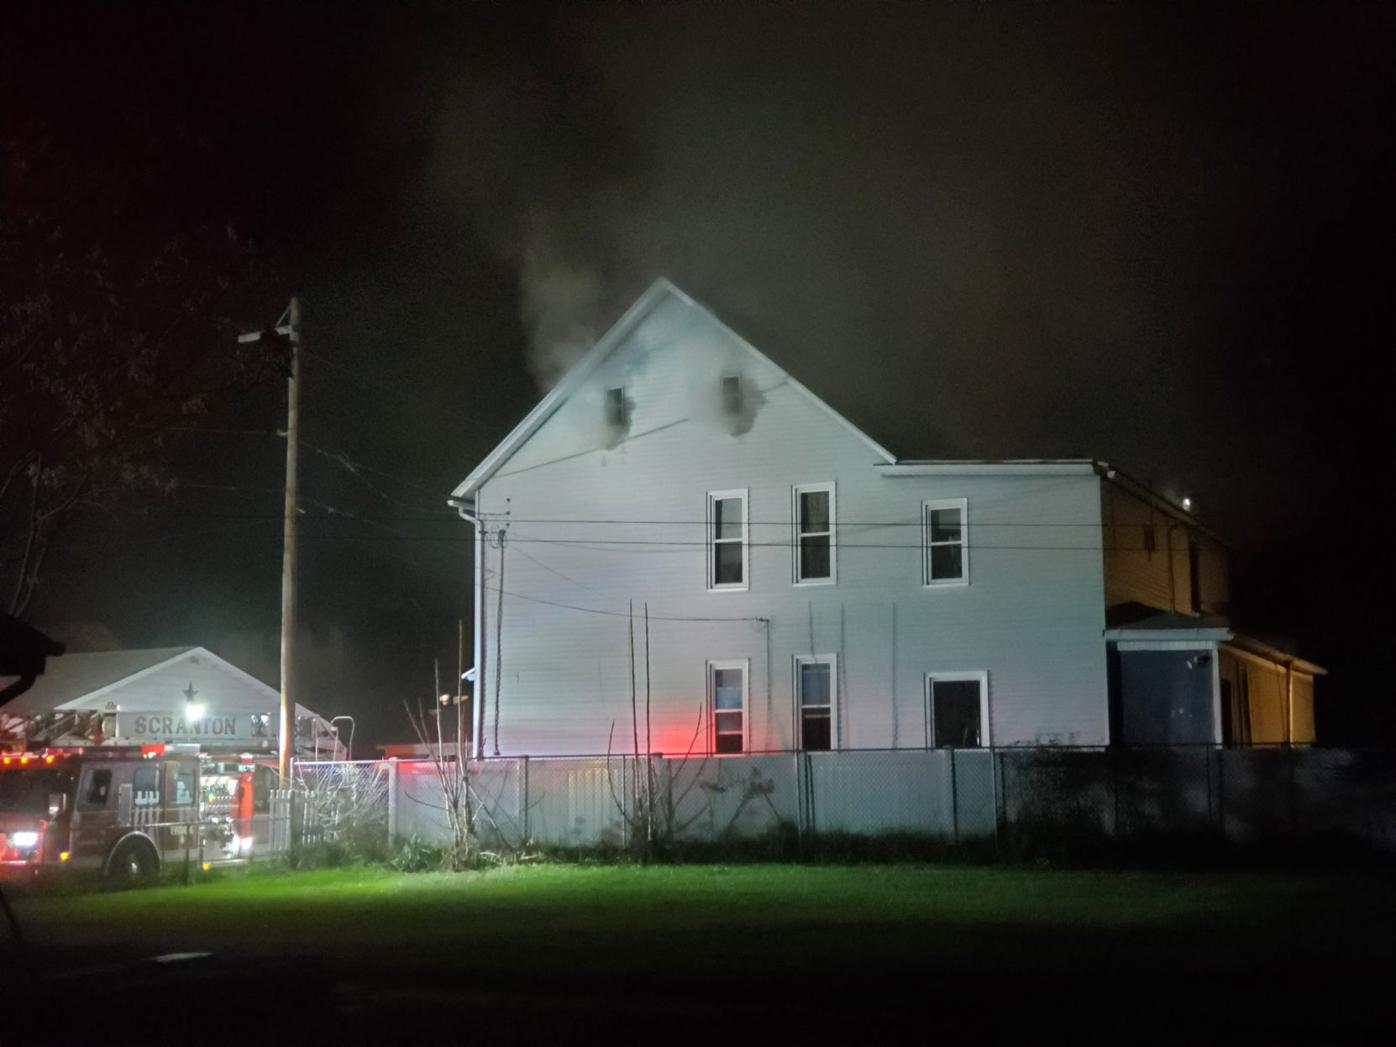 Firefighters were called to this home on Harrington Avenue Friday night after flames broke out just before 8 p.m.